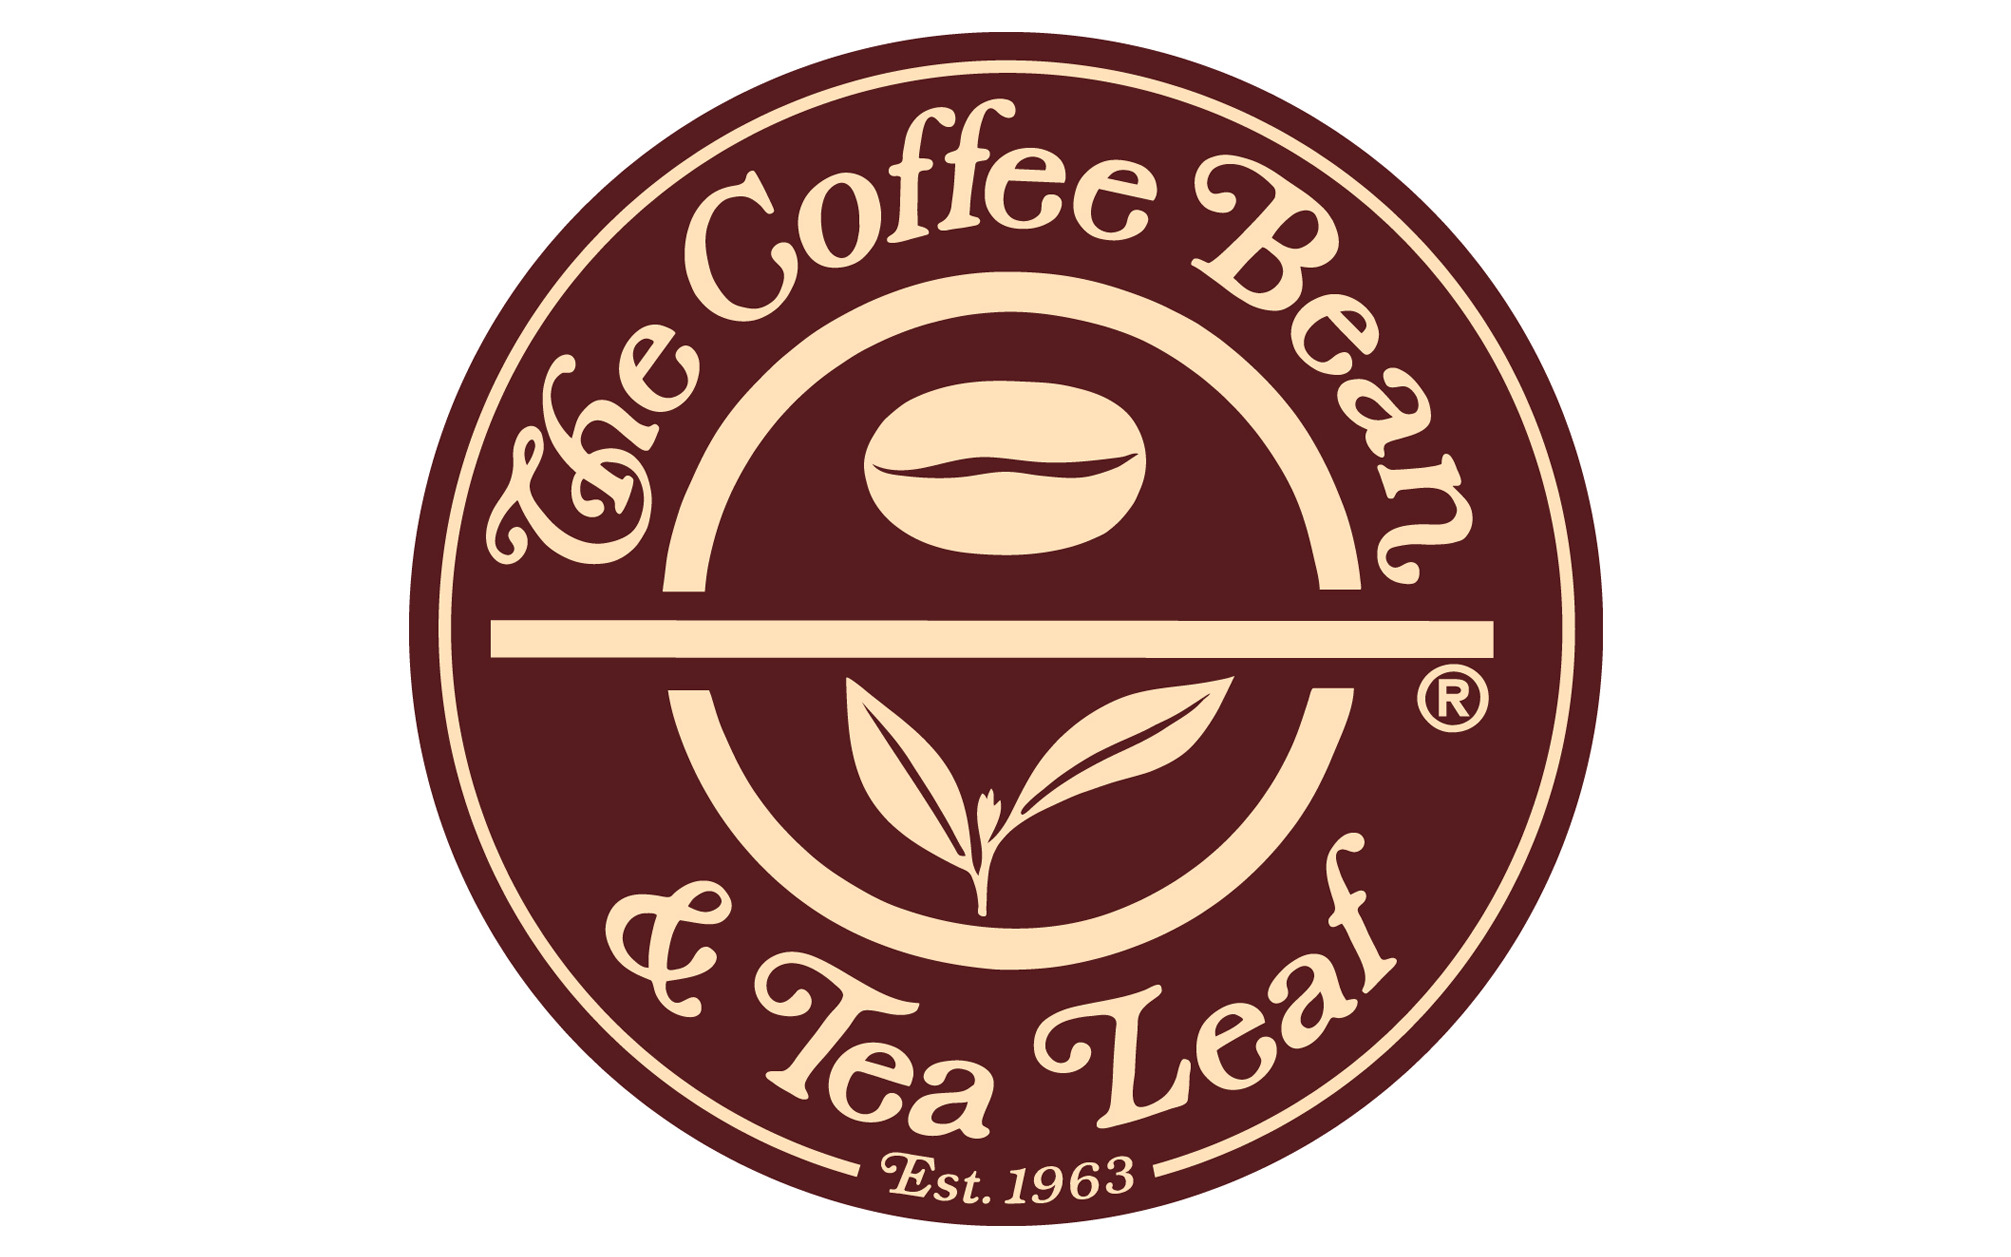 the coffee bean tea leaf cbtl The coffee bean & tea leaf's (cbtl) primary target market is men and women aged 18 to 40 as they tend to be frequent coffee & tea drinkers the main appeal to this consumer age group is through quality roasted coffee and excellent service so, despite invest a large amount of marketing and.